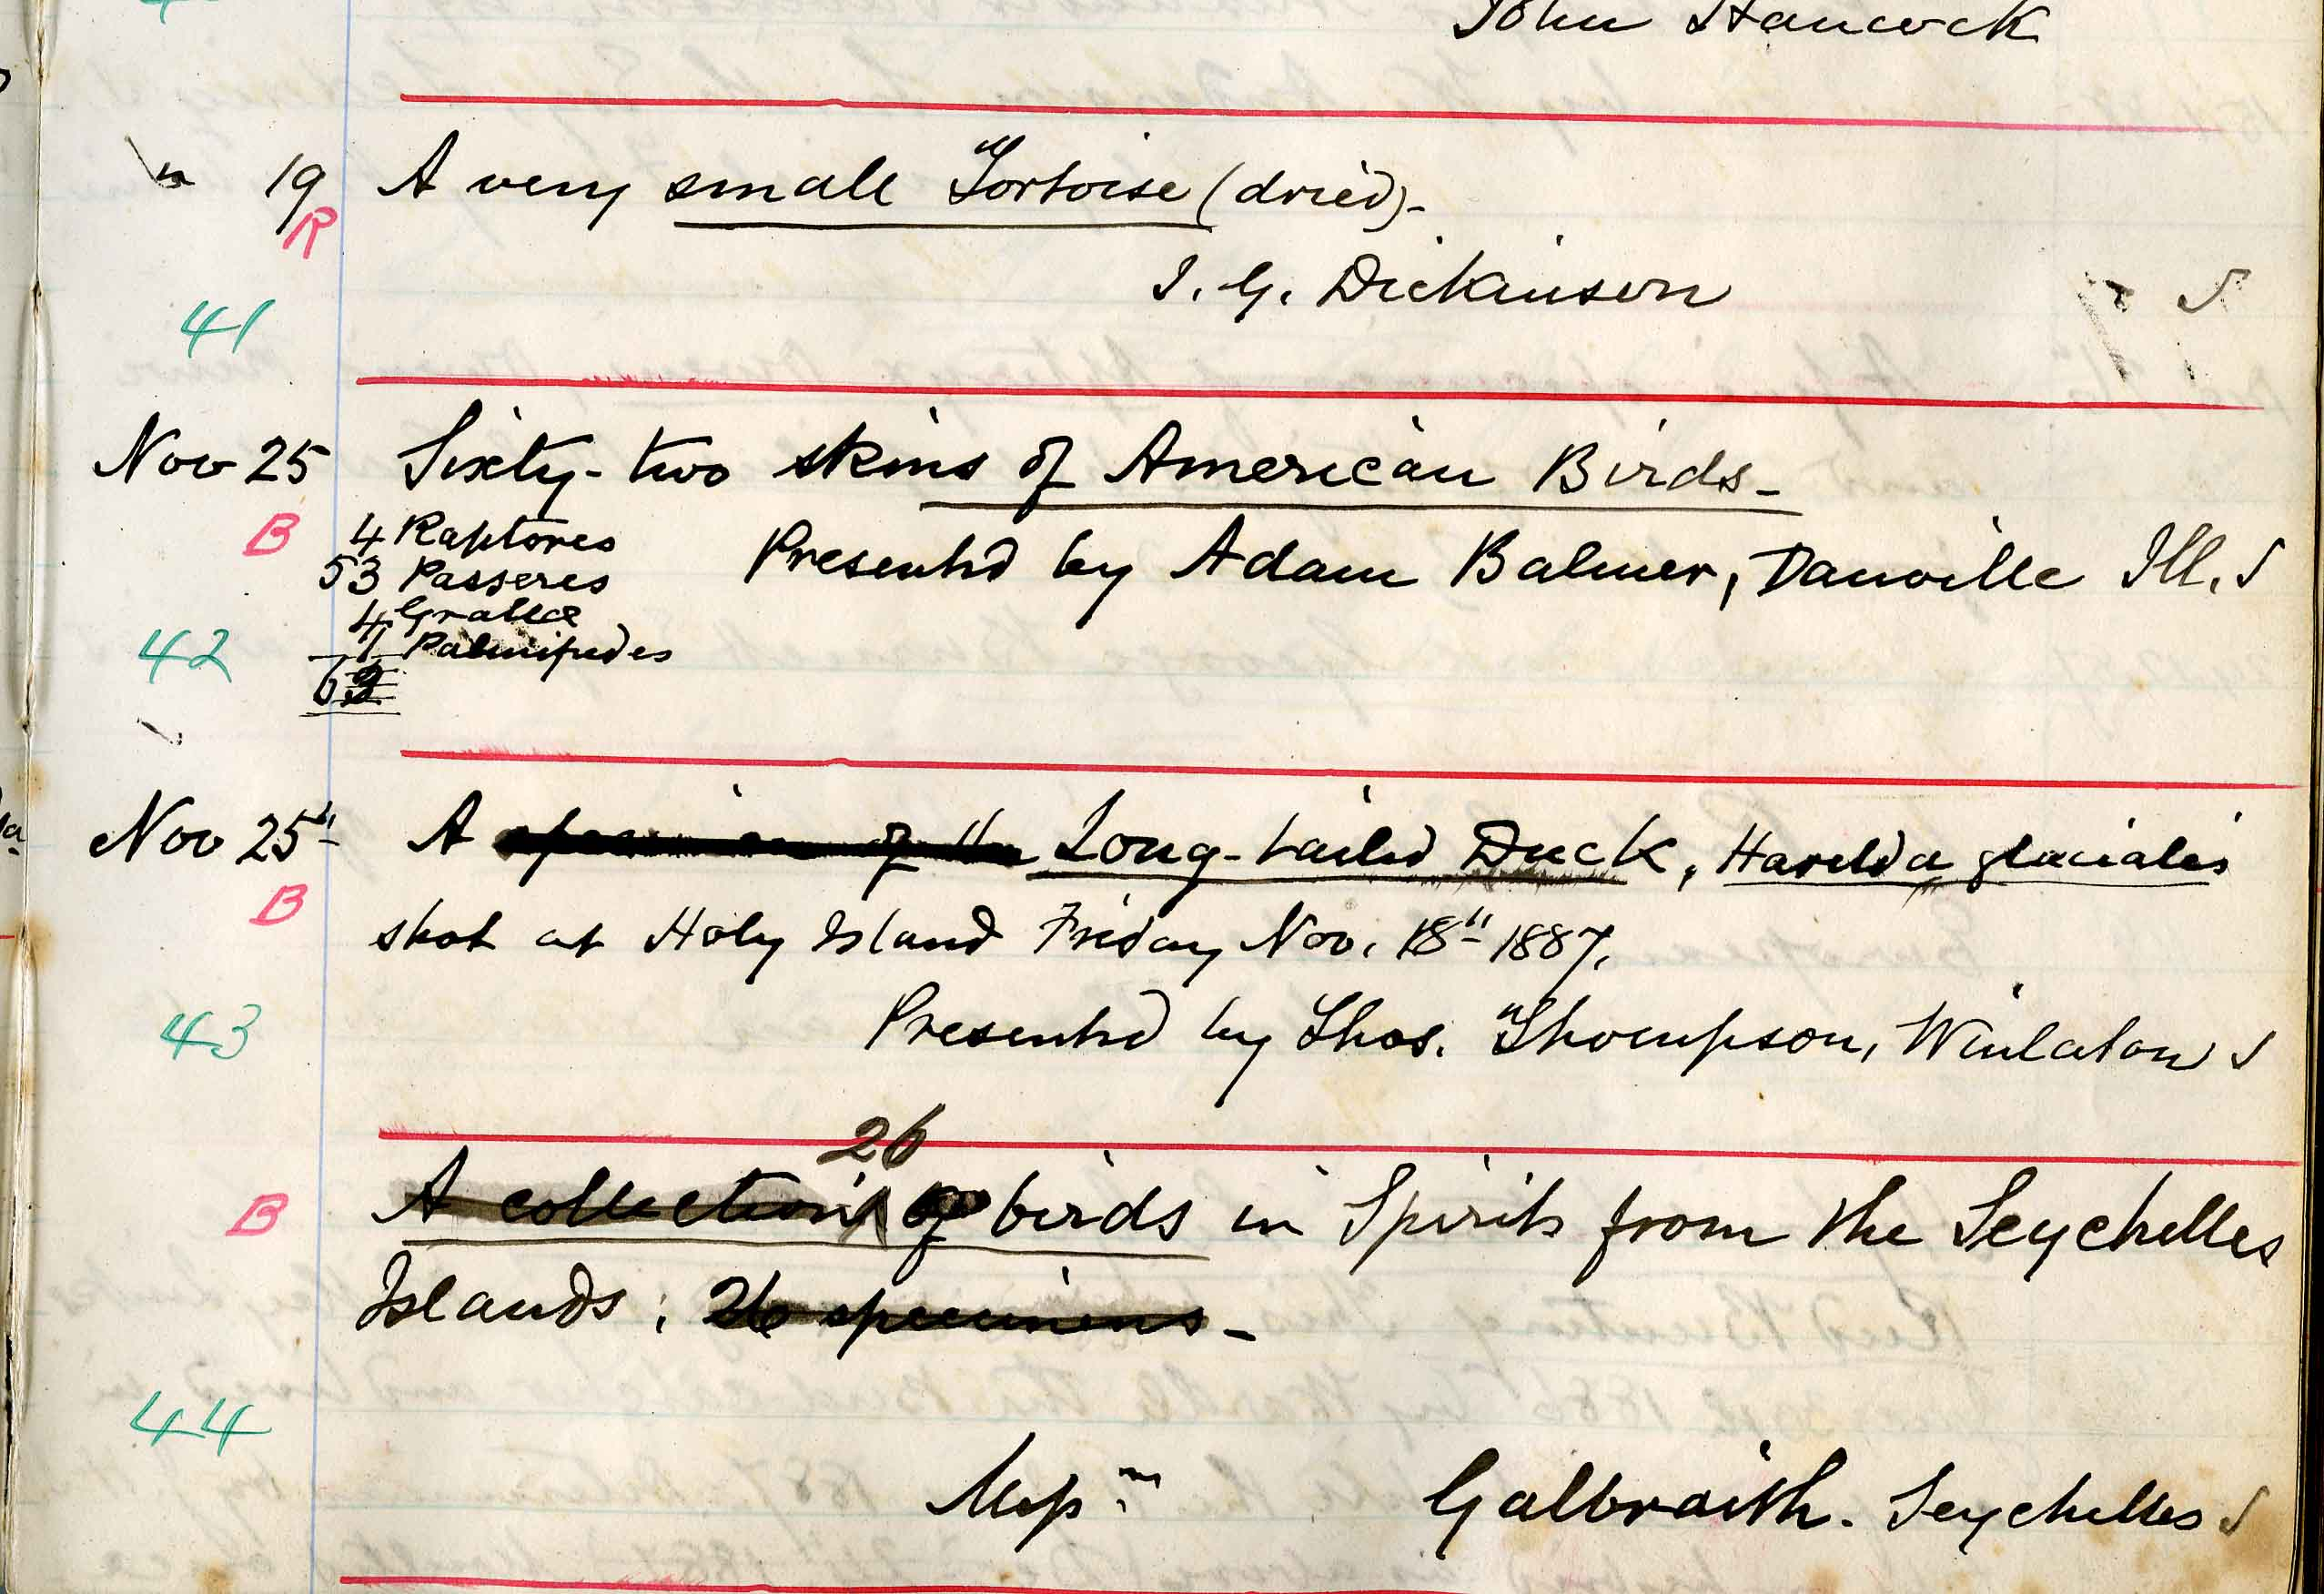 The original accession book entry from 1875